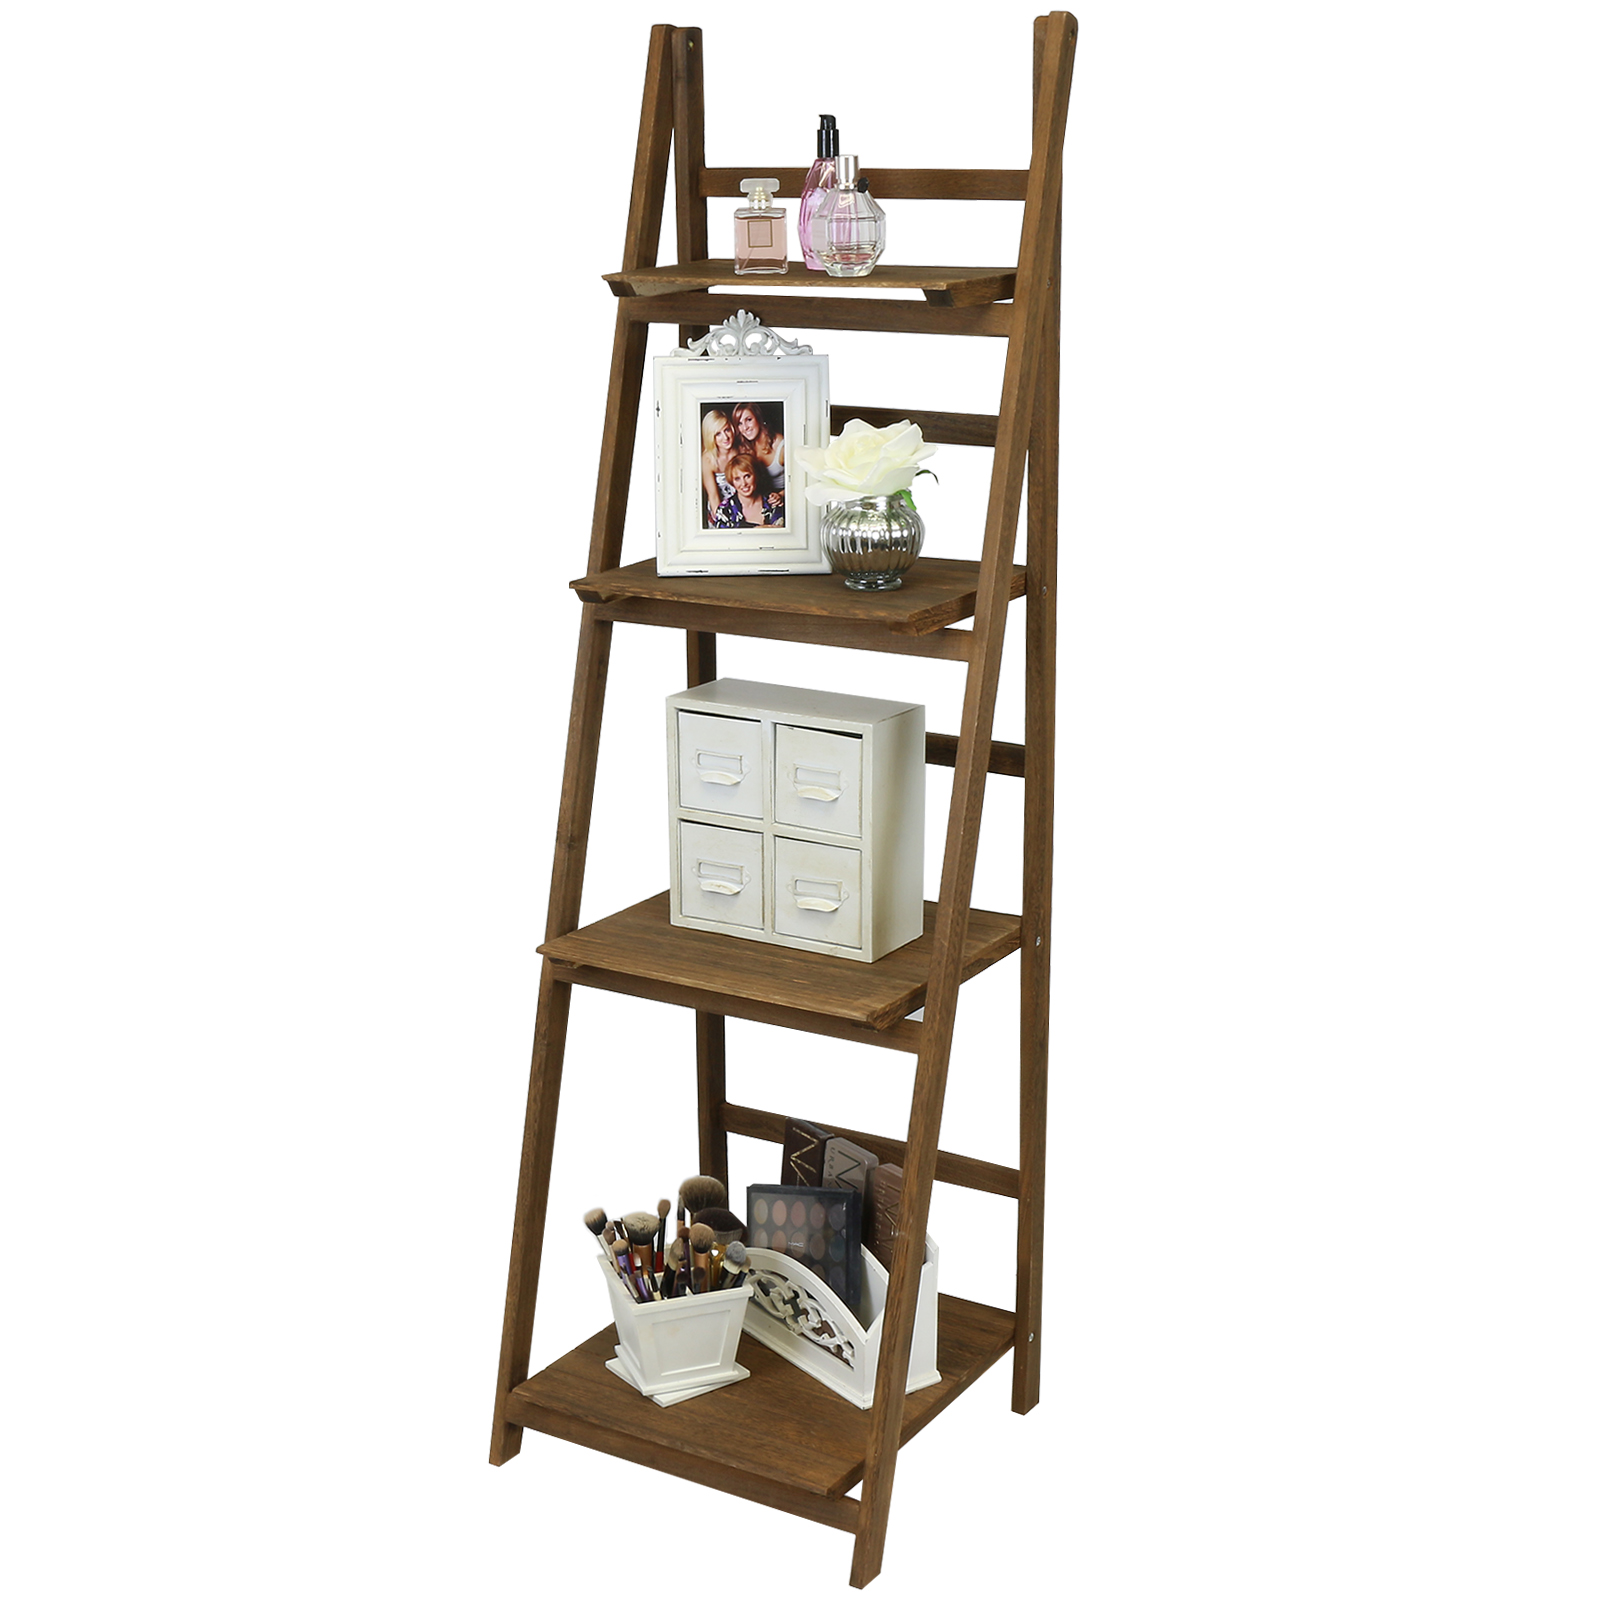 Exhibition Stand With Shelves : Hartleys brown tier folding ladder storage home display